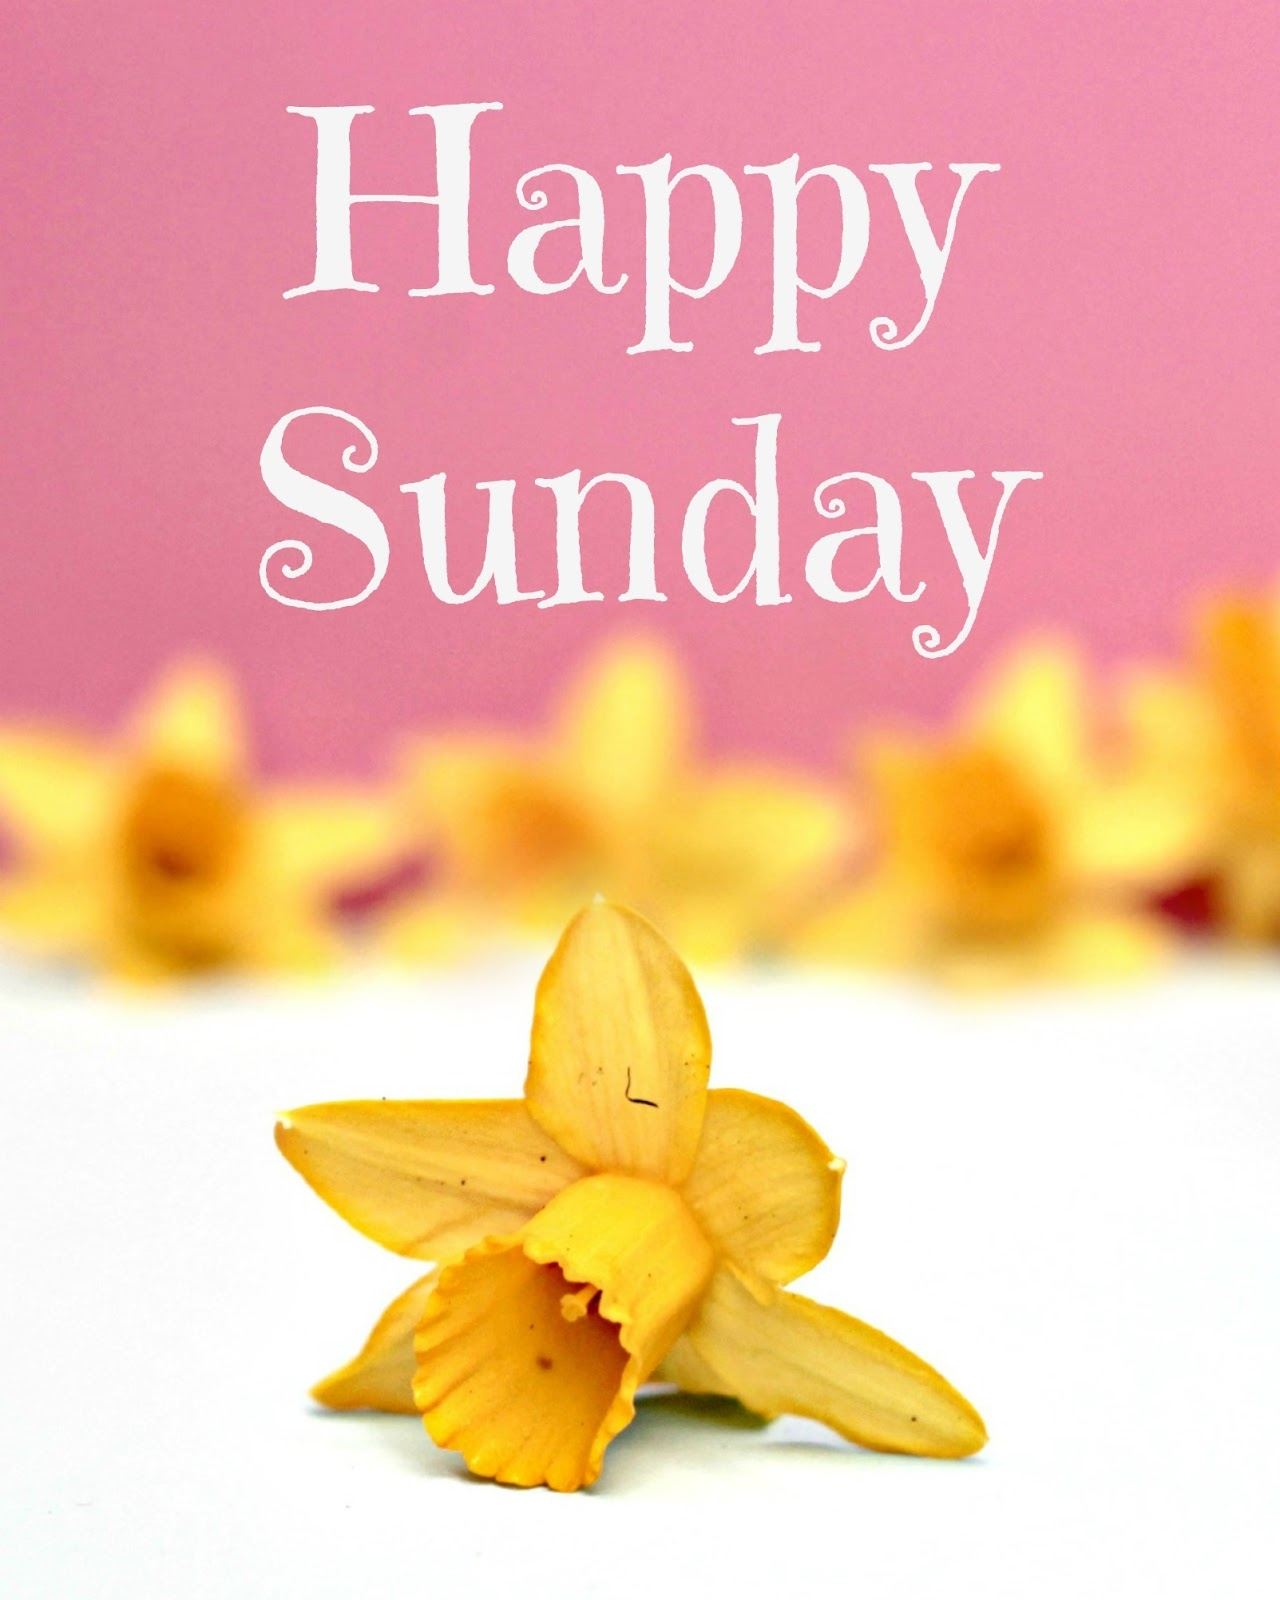 Good Morning Sunday For Her : Happy sunday quotes pictures facebook quotesgram